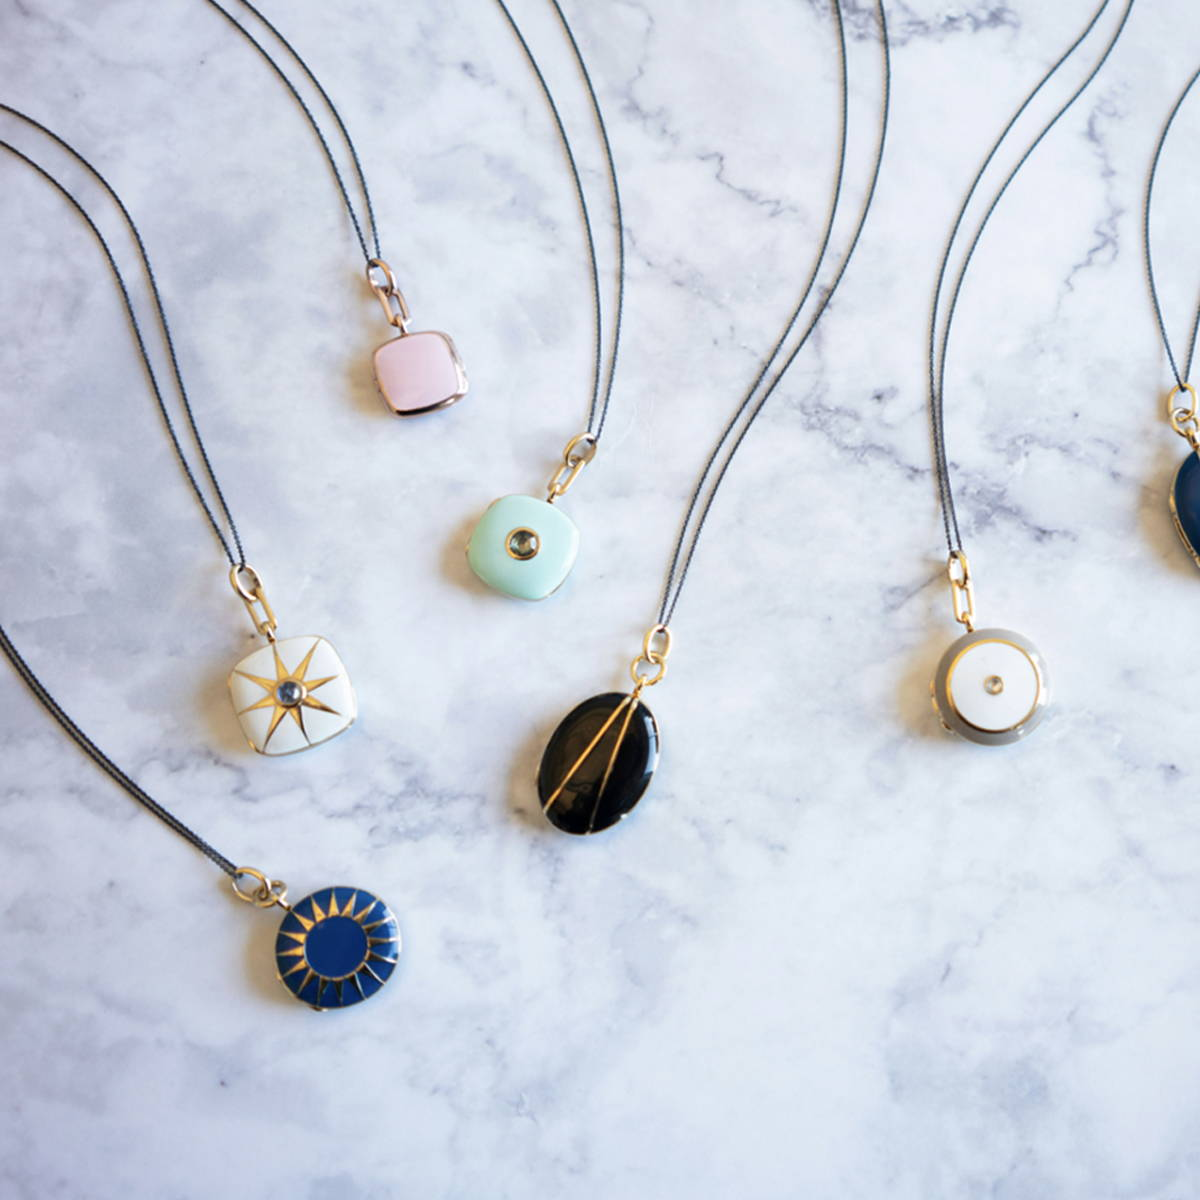 Colored lockets